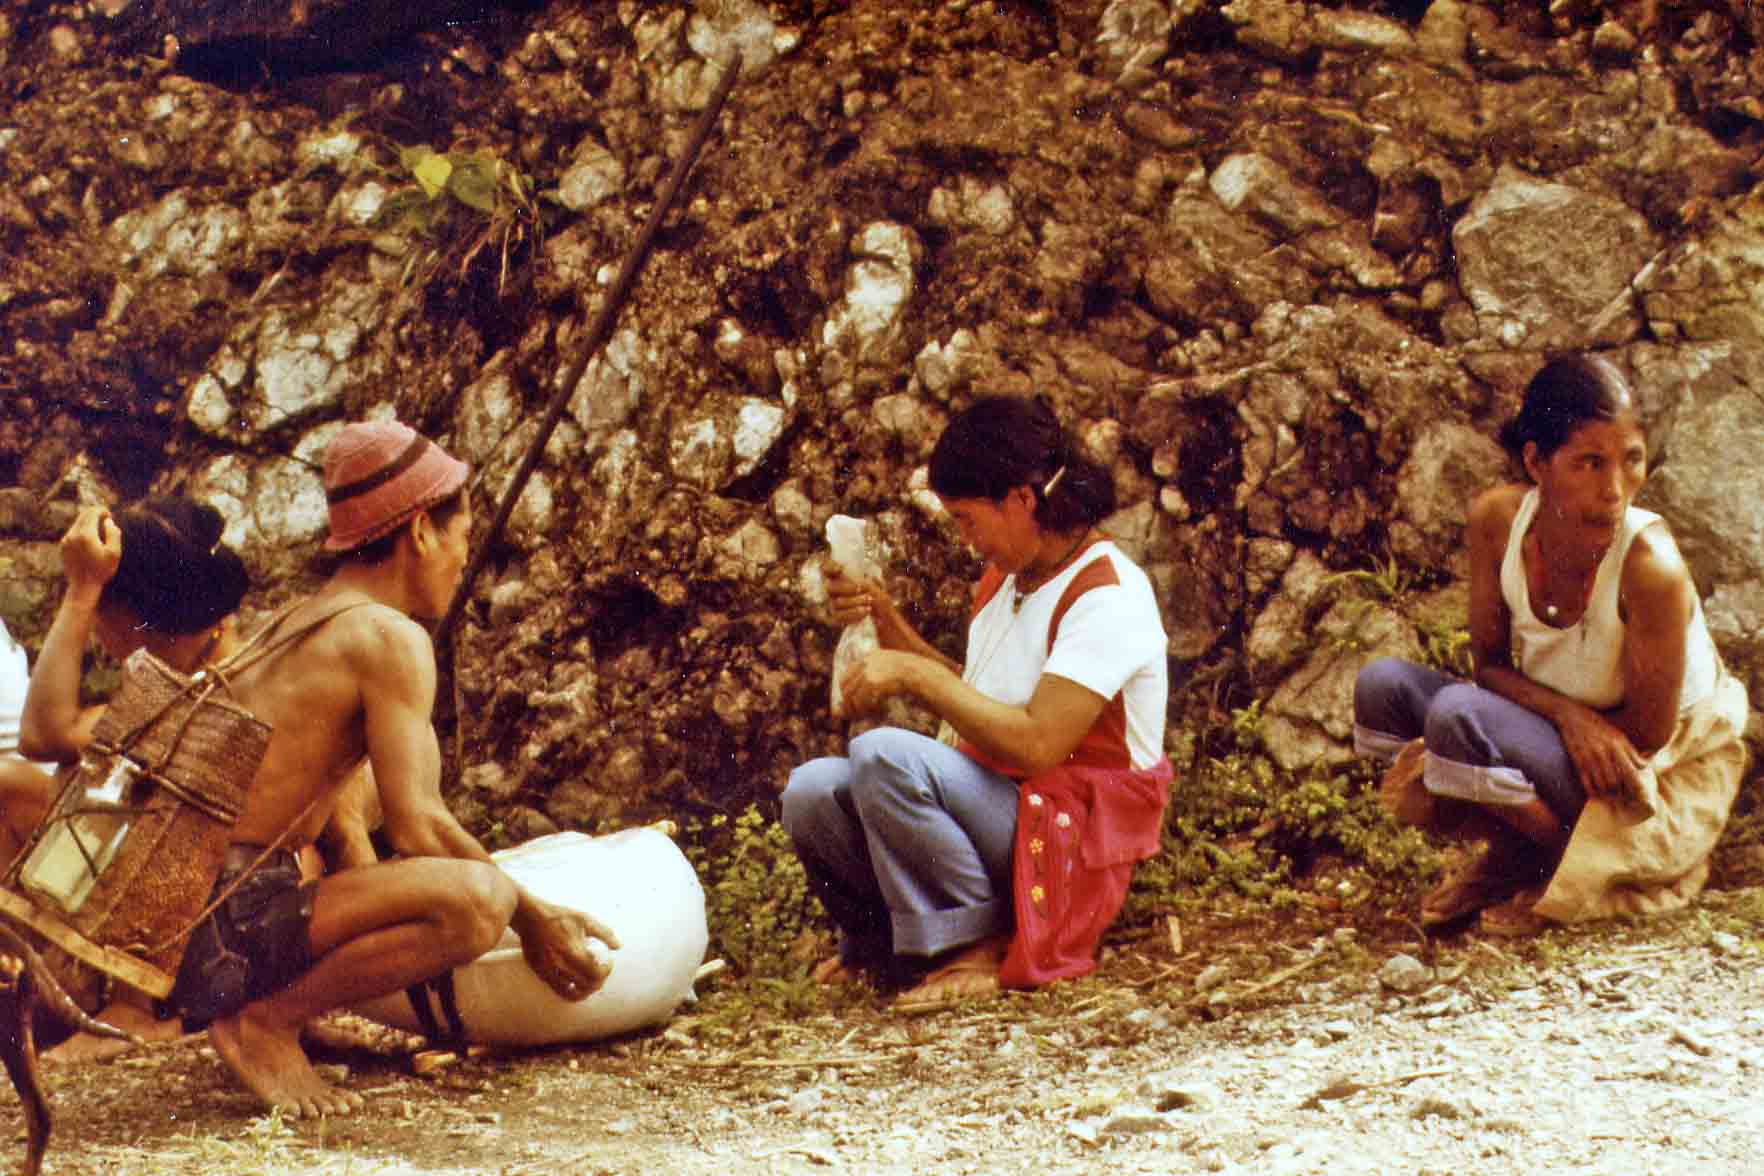 Natives between Bontoc and Banaue